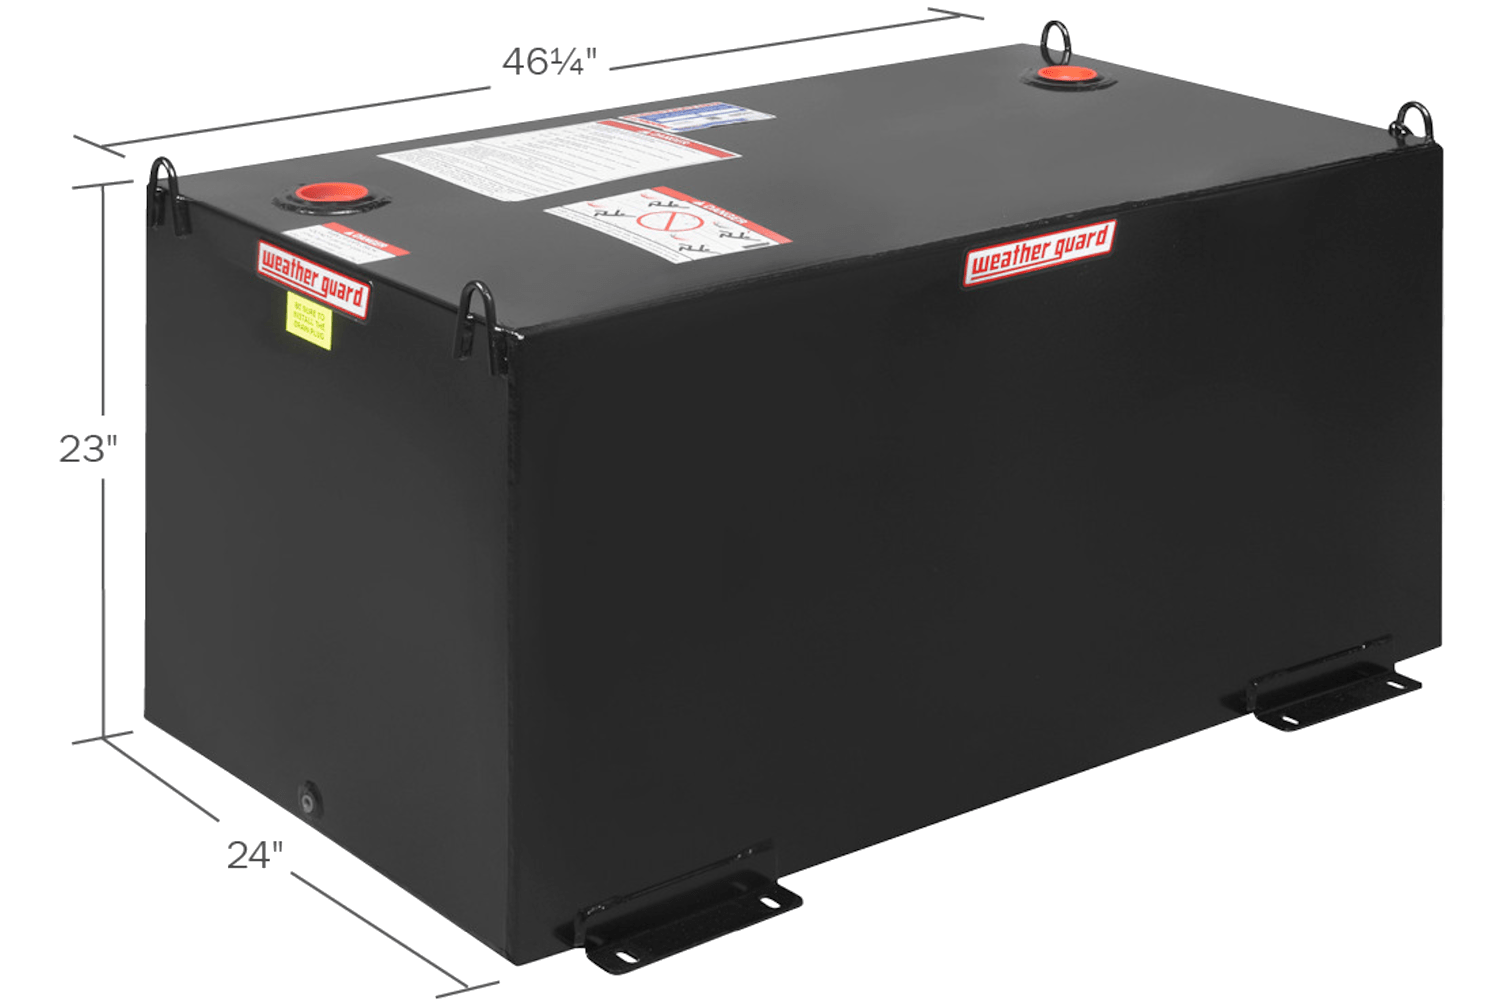 Weather Guard rectangular fuel tanks in black.